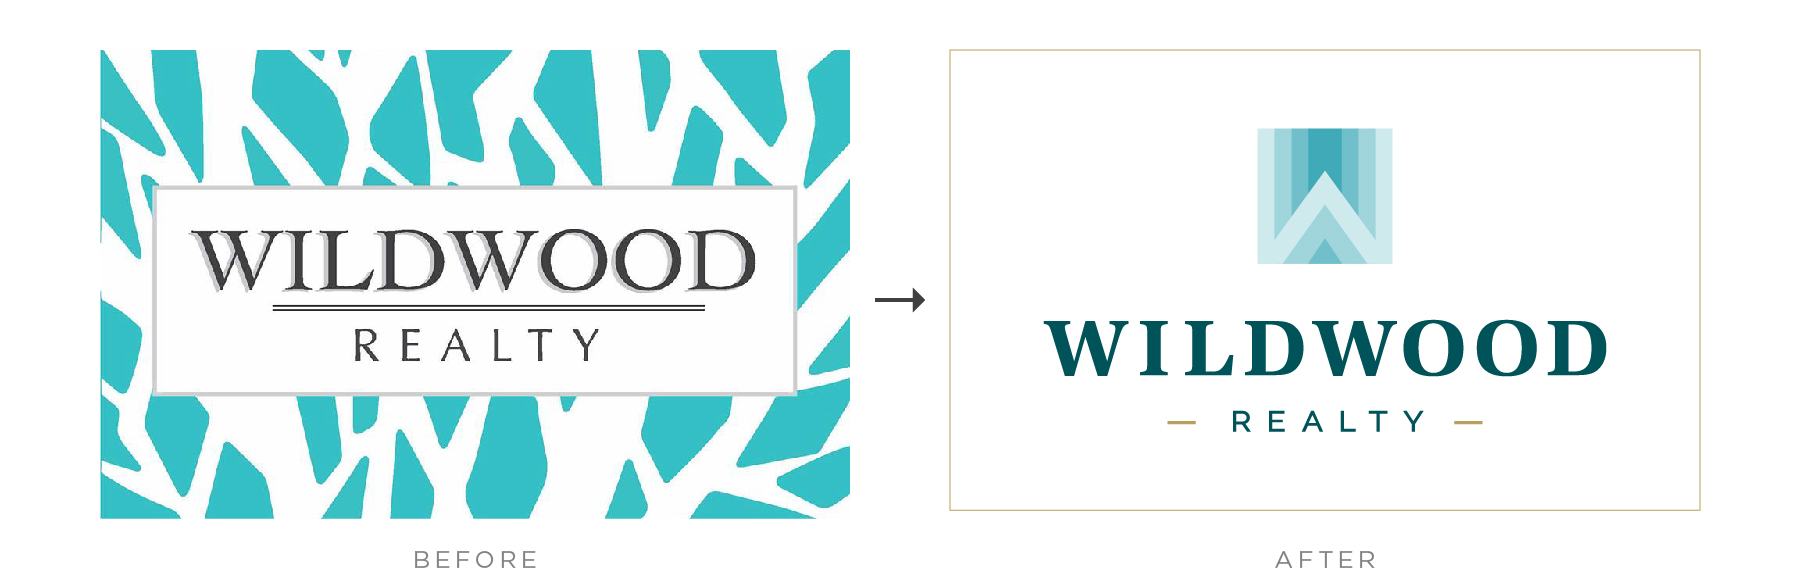 Wildwood-Logo-Evolution.jpg